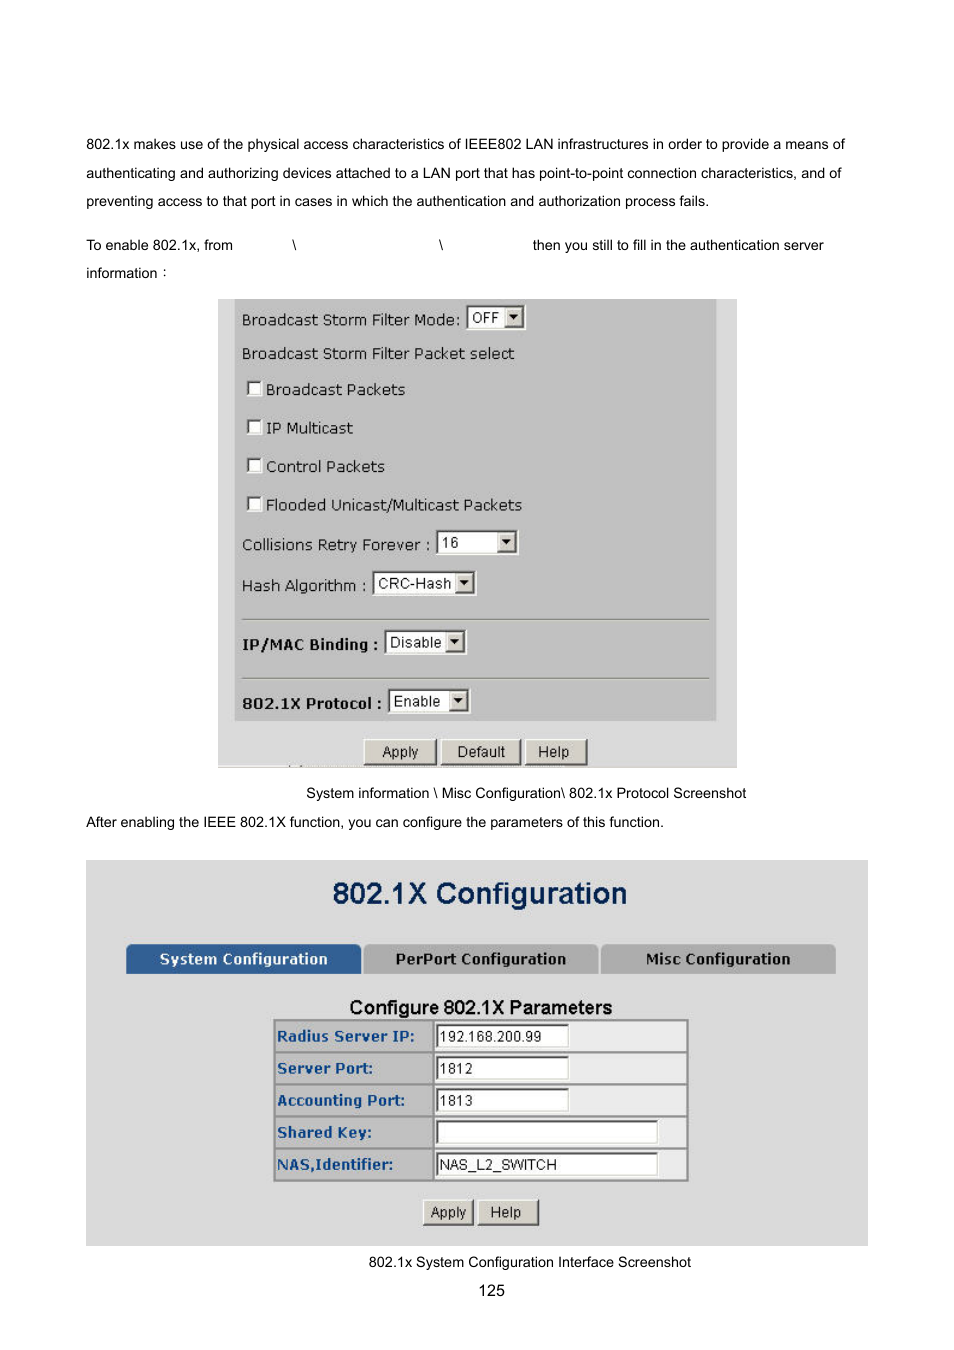 Hp E2620 Manual Countax E36 Wiring Diagram Mi Networking Preparation Guide Array 2 System Configuration Planet Wgsw 2620hp User Page 125 Rh Manualsdir Com